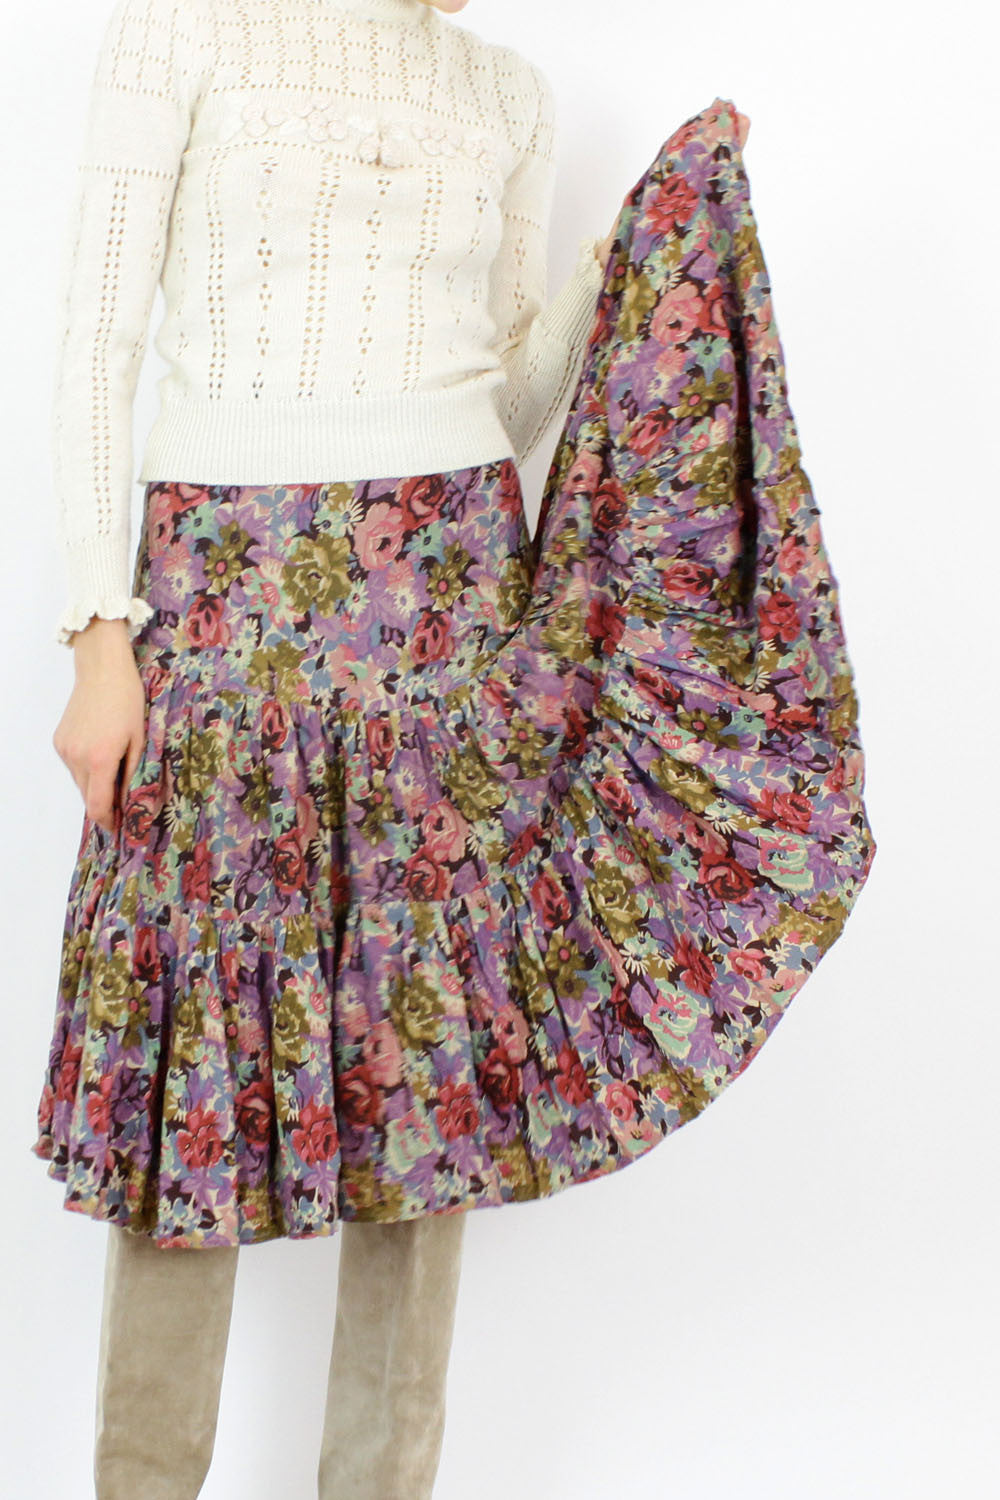 Sale / Dusty Rose Prairie Skirt XS/S